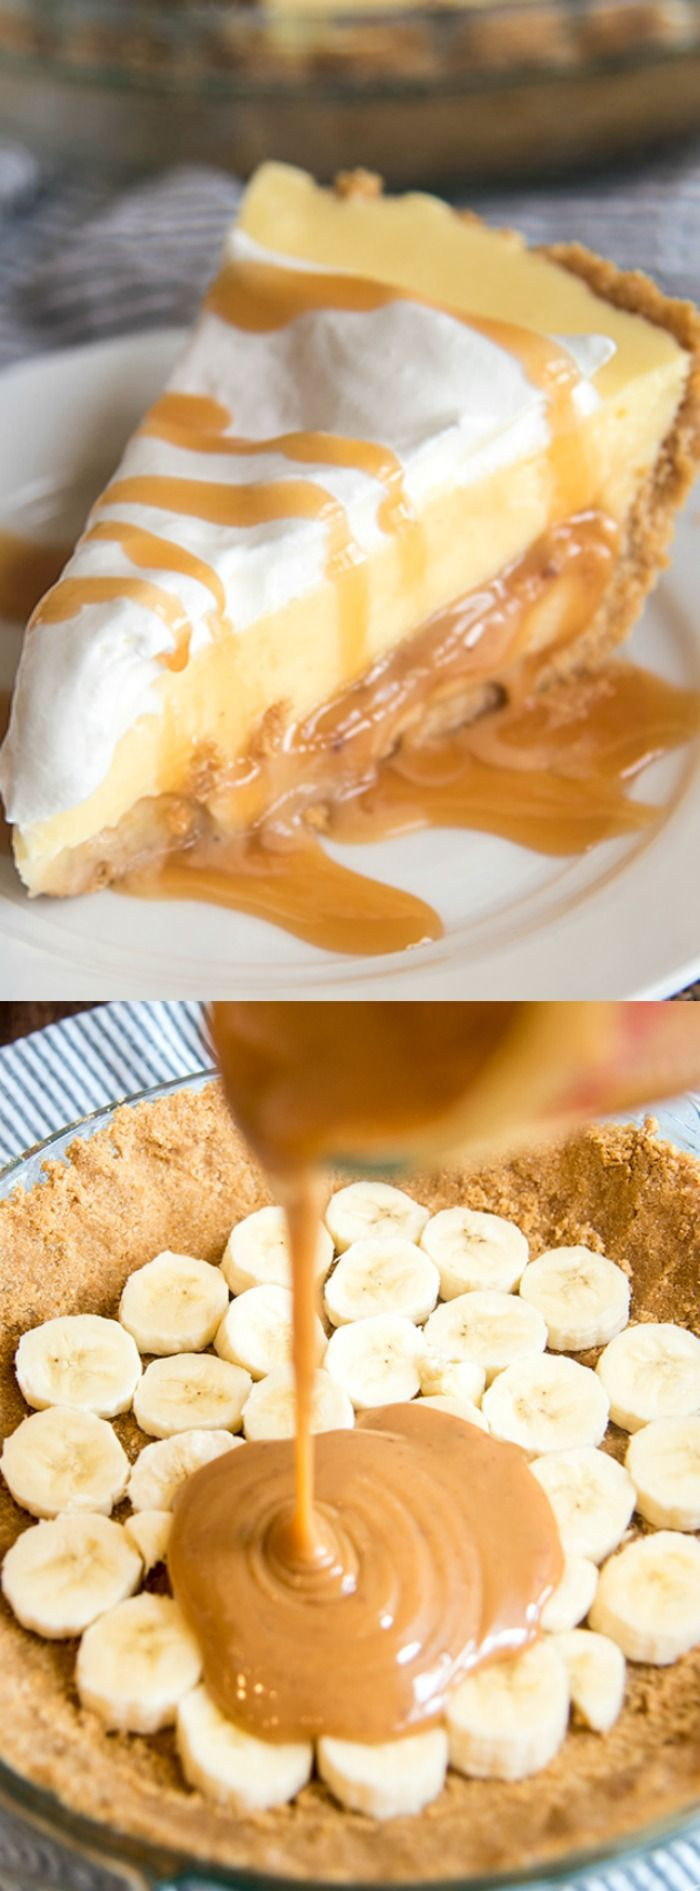 This Caramel Banana Cream Pie recipe from Aimee over at Like Mother Like…